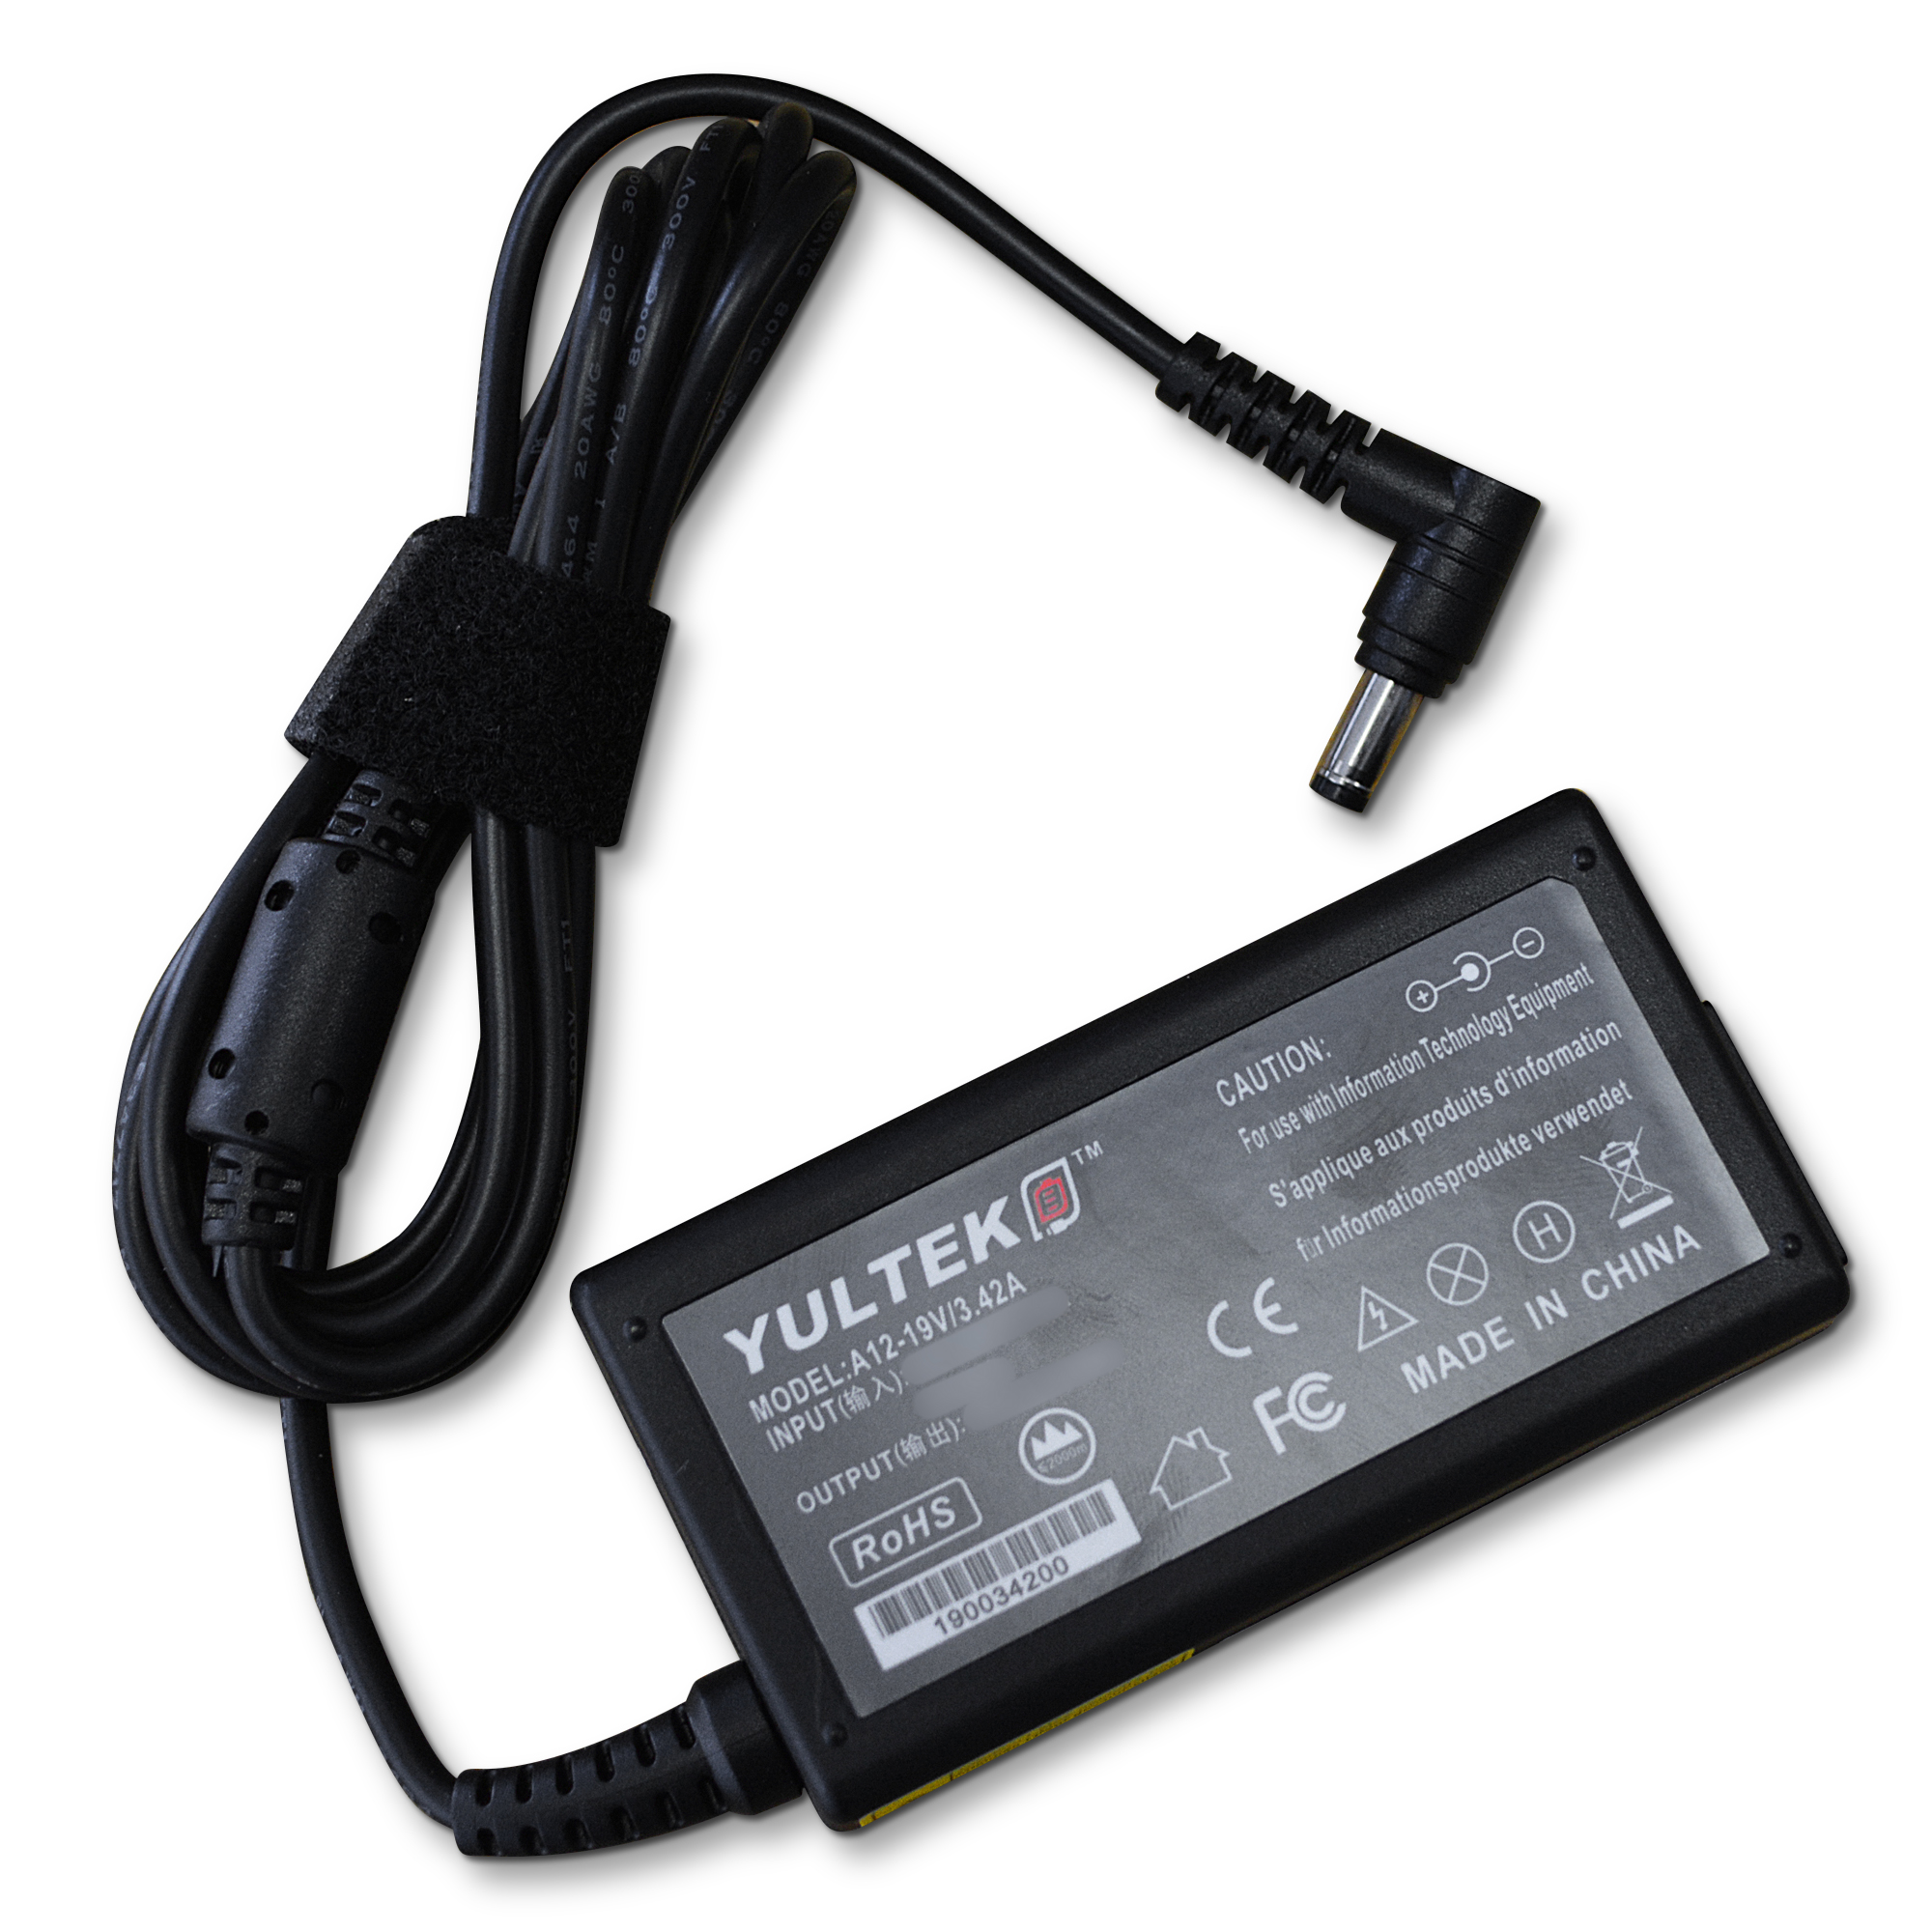 Fujitsu-Siemens Part Number UWL:76G01F65F-5A Laptop Charger